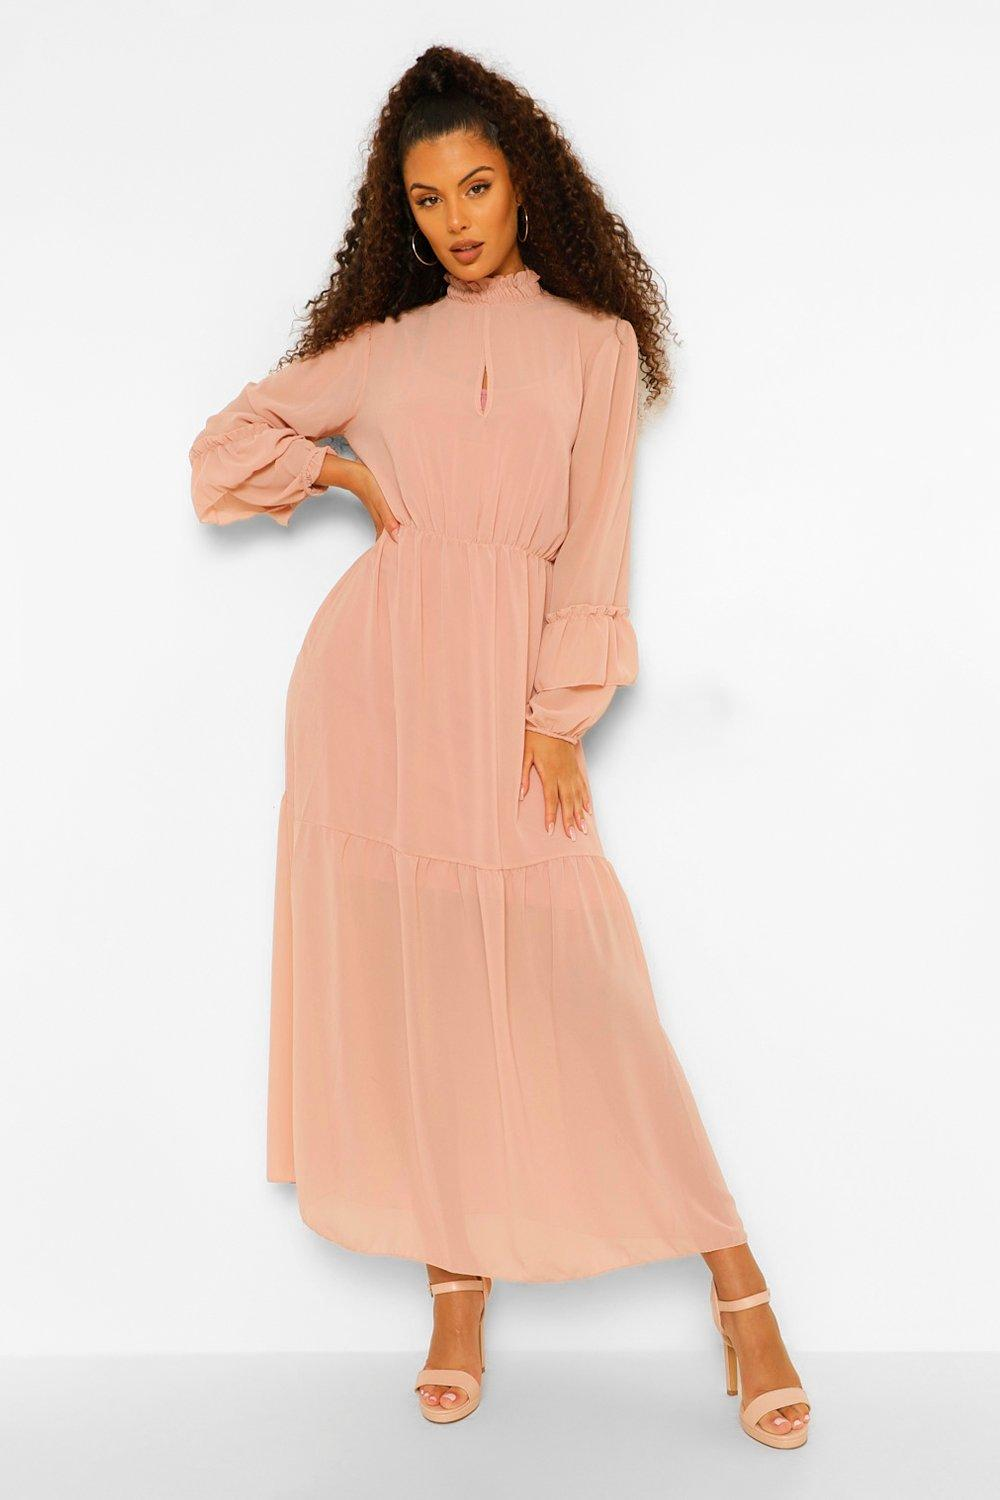 70s Prom, Formal, Evening, Party Dresses Womens High Neck Frill Sleeve Maxi Dress - Pink - 10 $24.00 AT vintagedancer.com